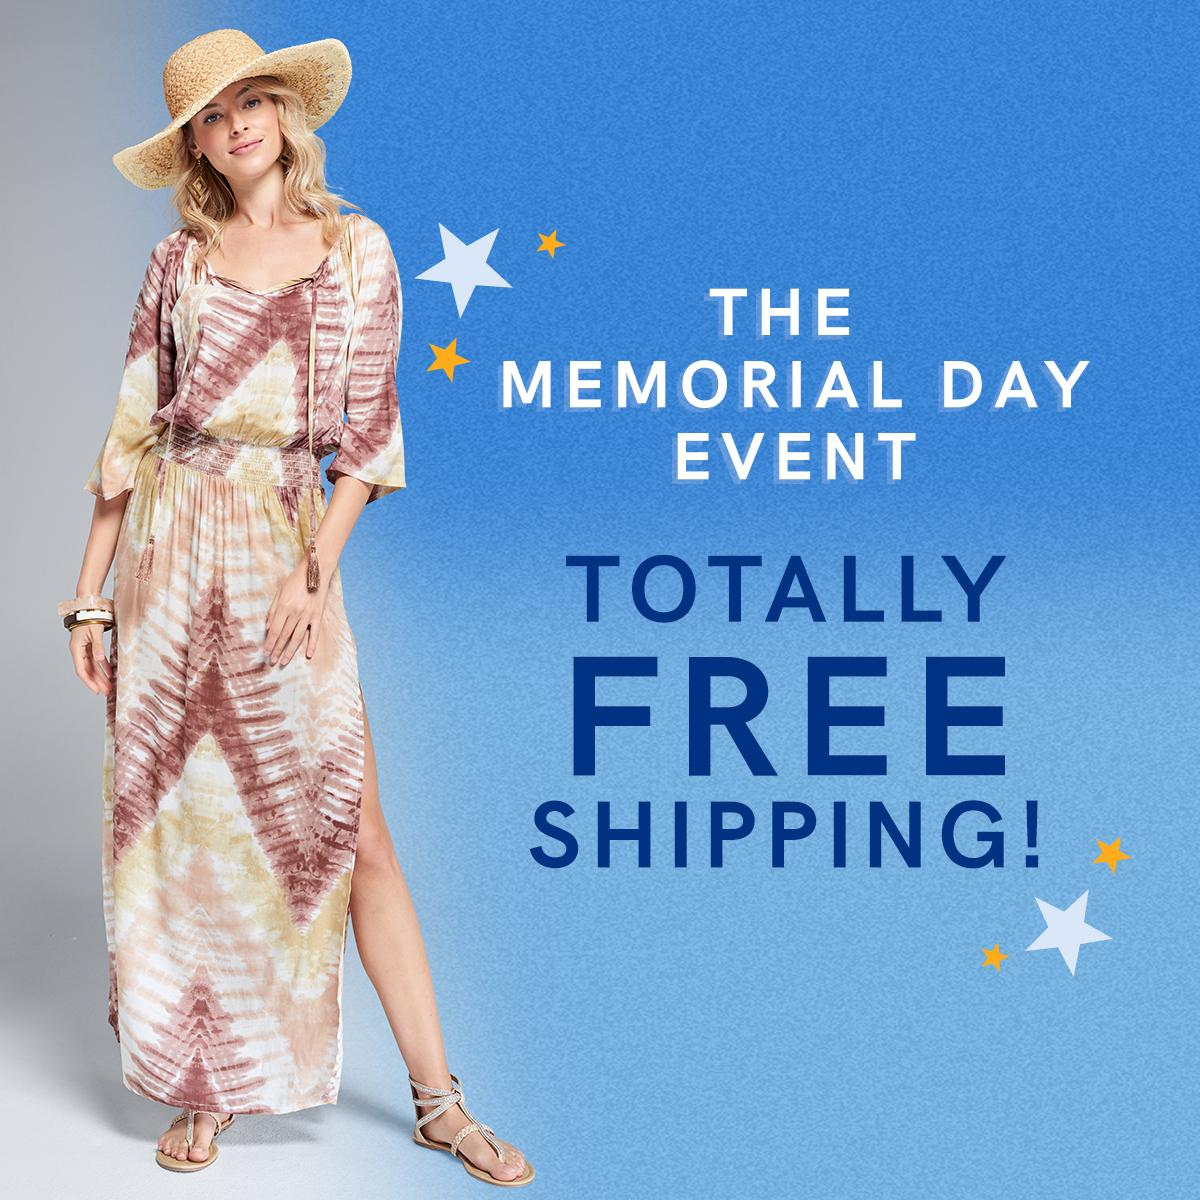 The Memorial Day Event is here and yes, that's right: TOTALLY FREE SHIPPING all weekend long! https://t.co/djGdMMqEdn https://t.co/RRIM399a7G